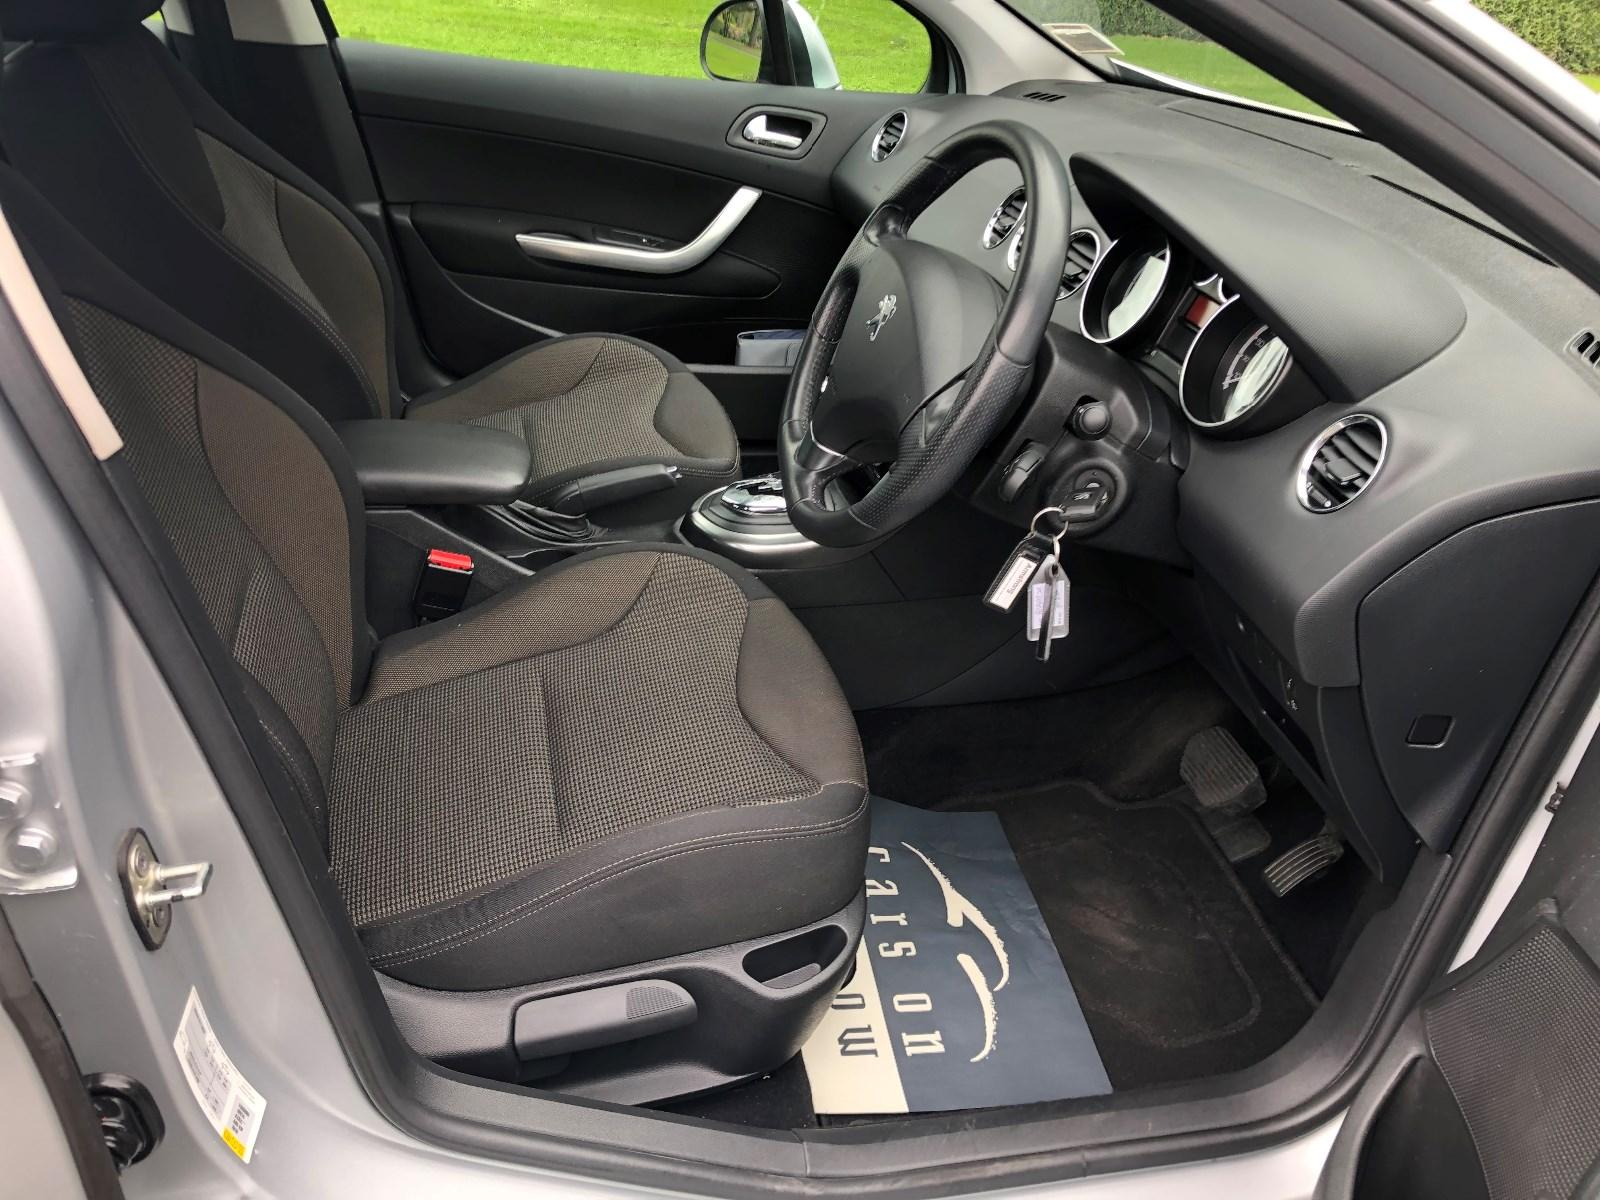 image-8, 2013 PEUGEOT 308 Active at Invercargill